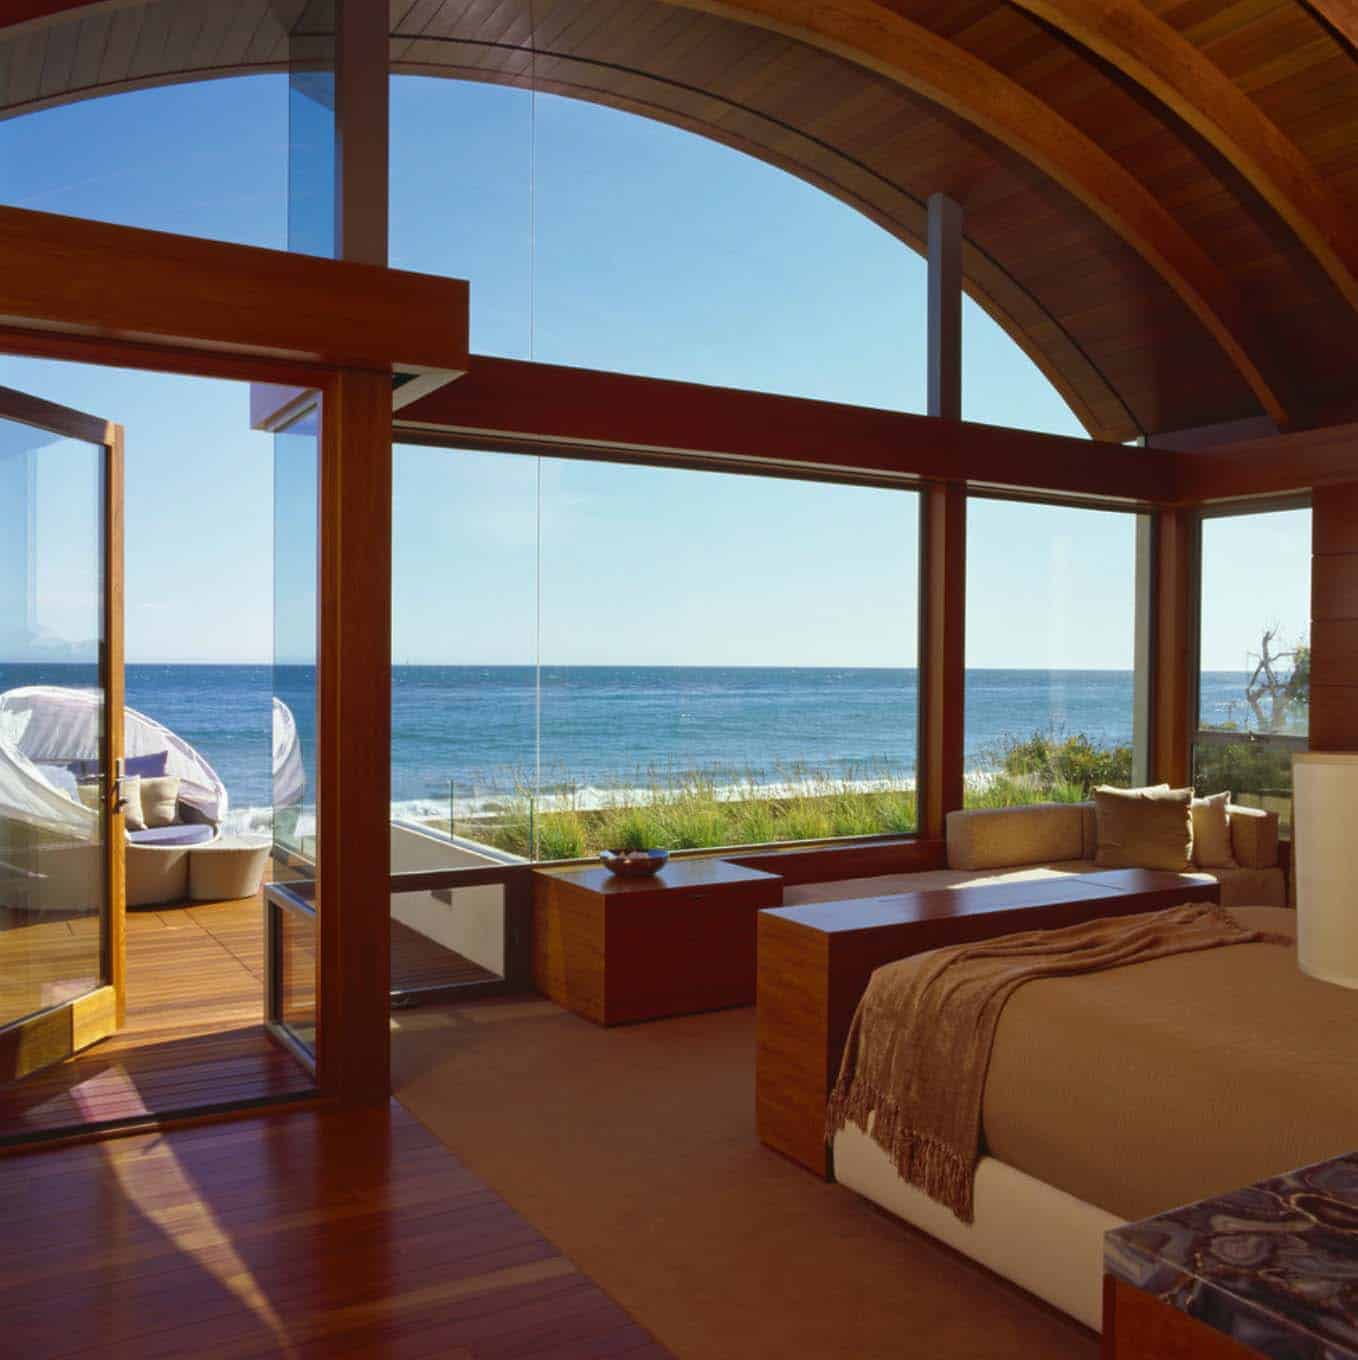 Bedroom With Ocean Views-17-1 Kindesign